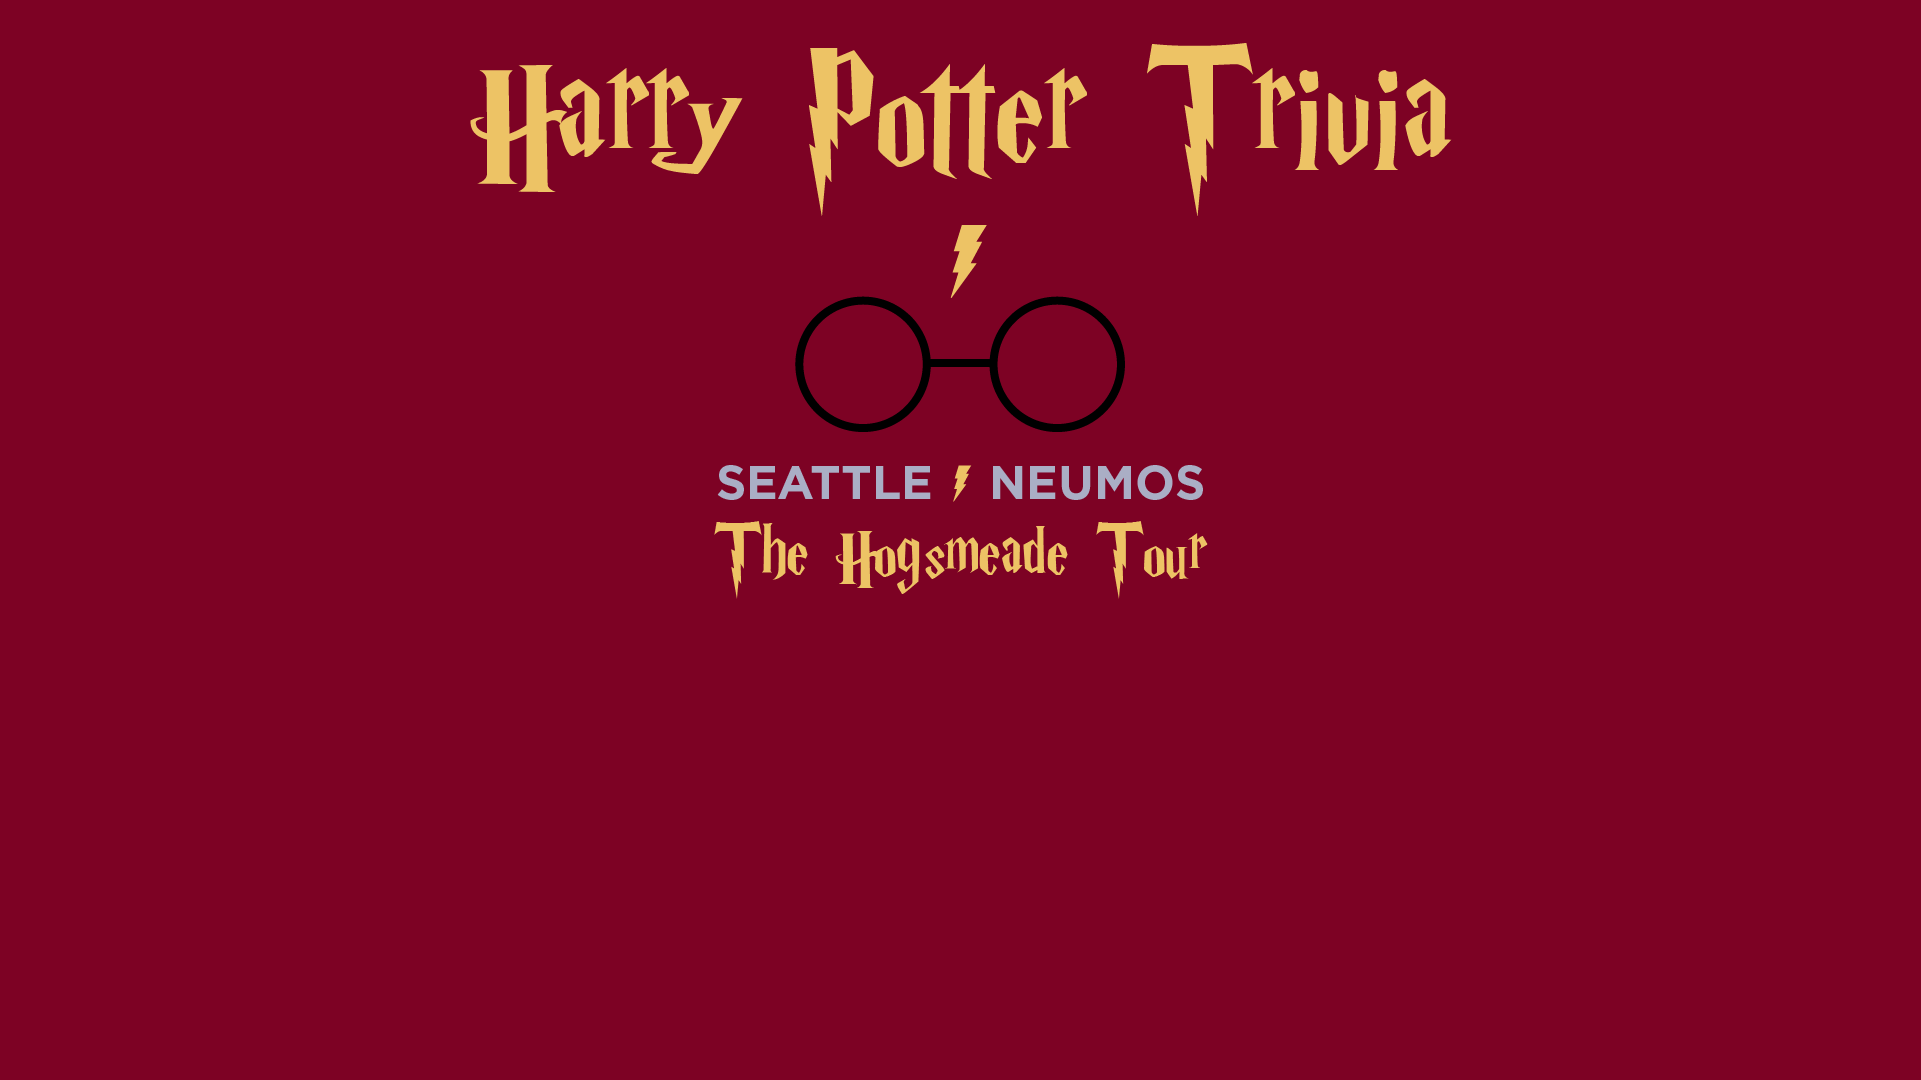 Harry Potter Trivia at Neumos in Seattle, WA on Tue ...